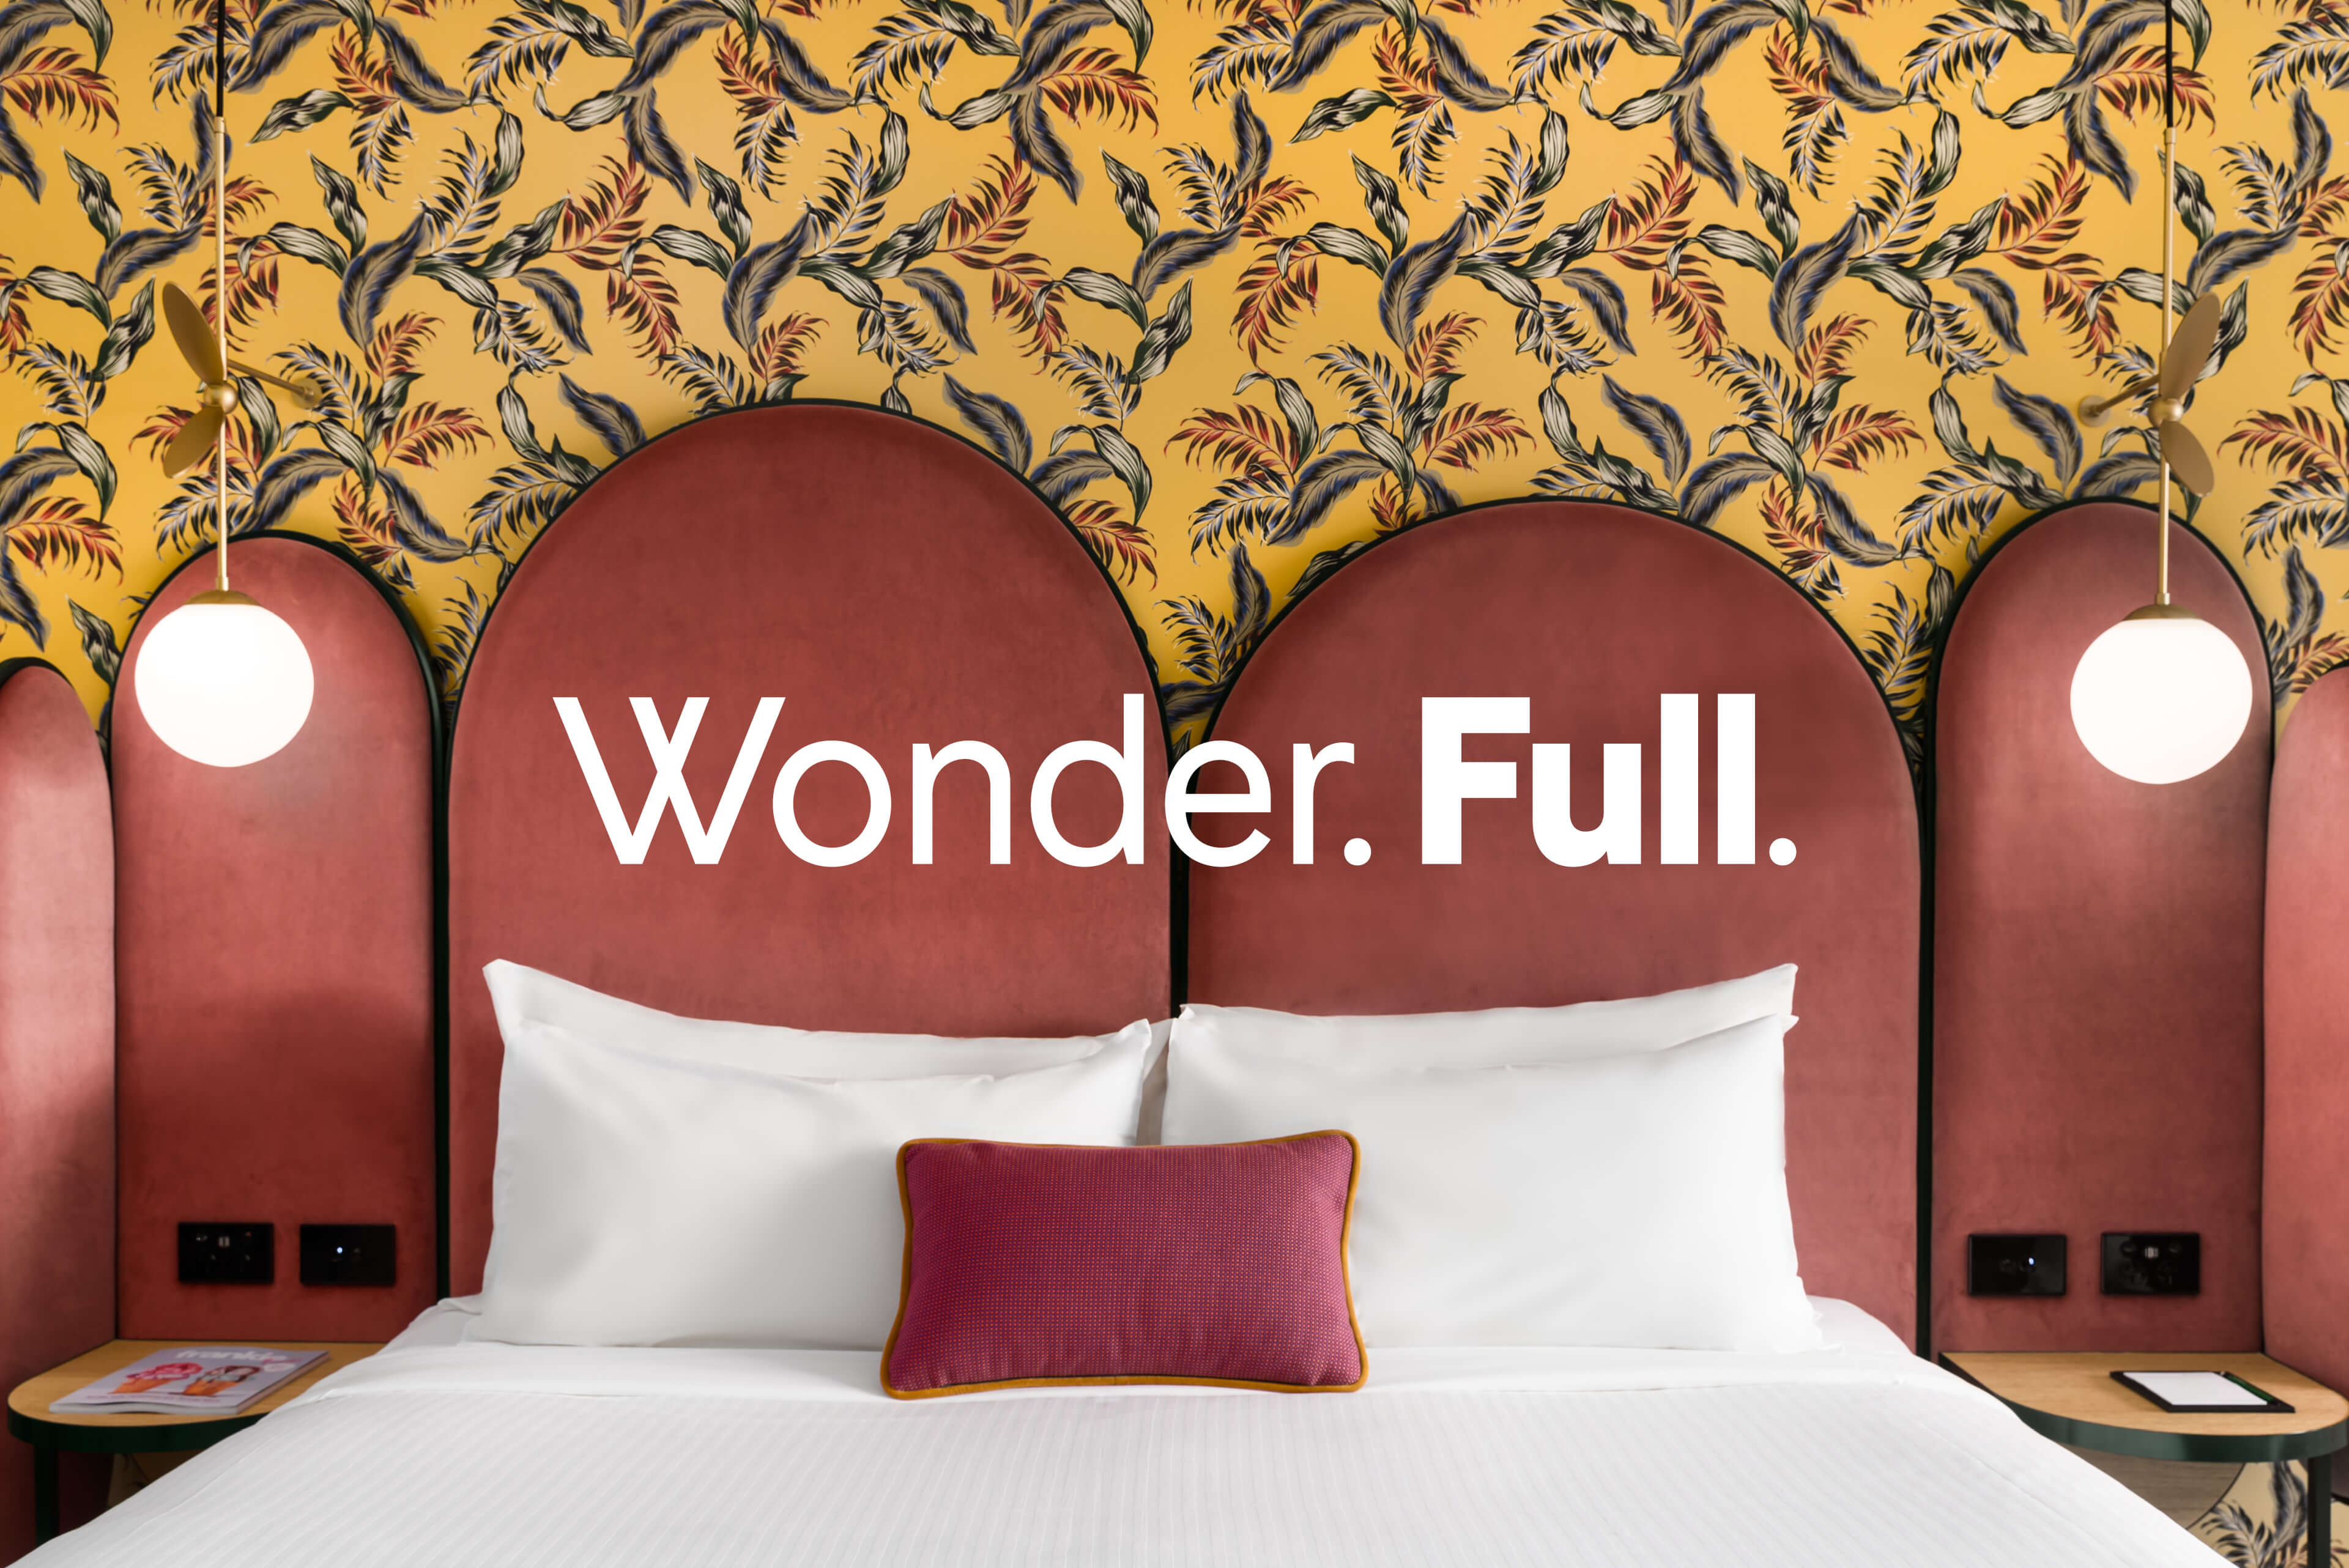 Ovolo Hotels Brand Refresh - Wonder. Full. Logotype with Hotel Room Photography